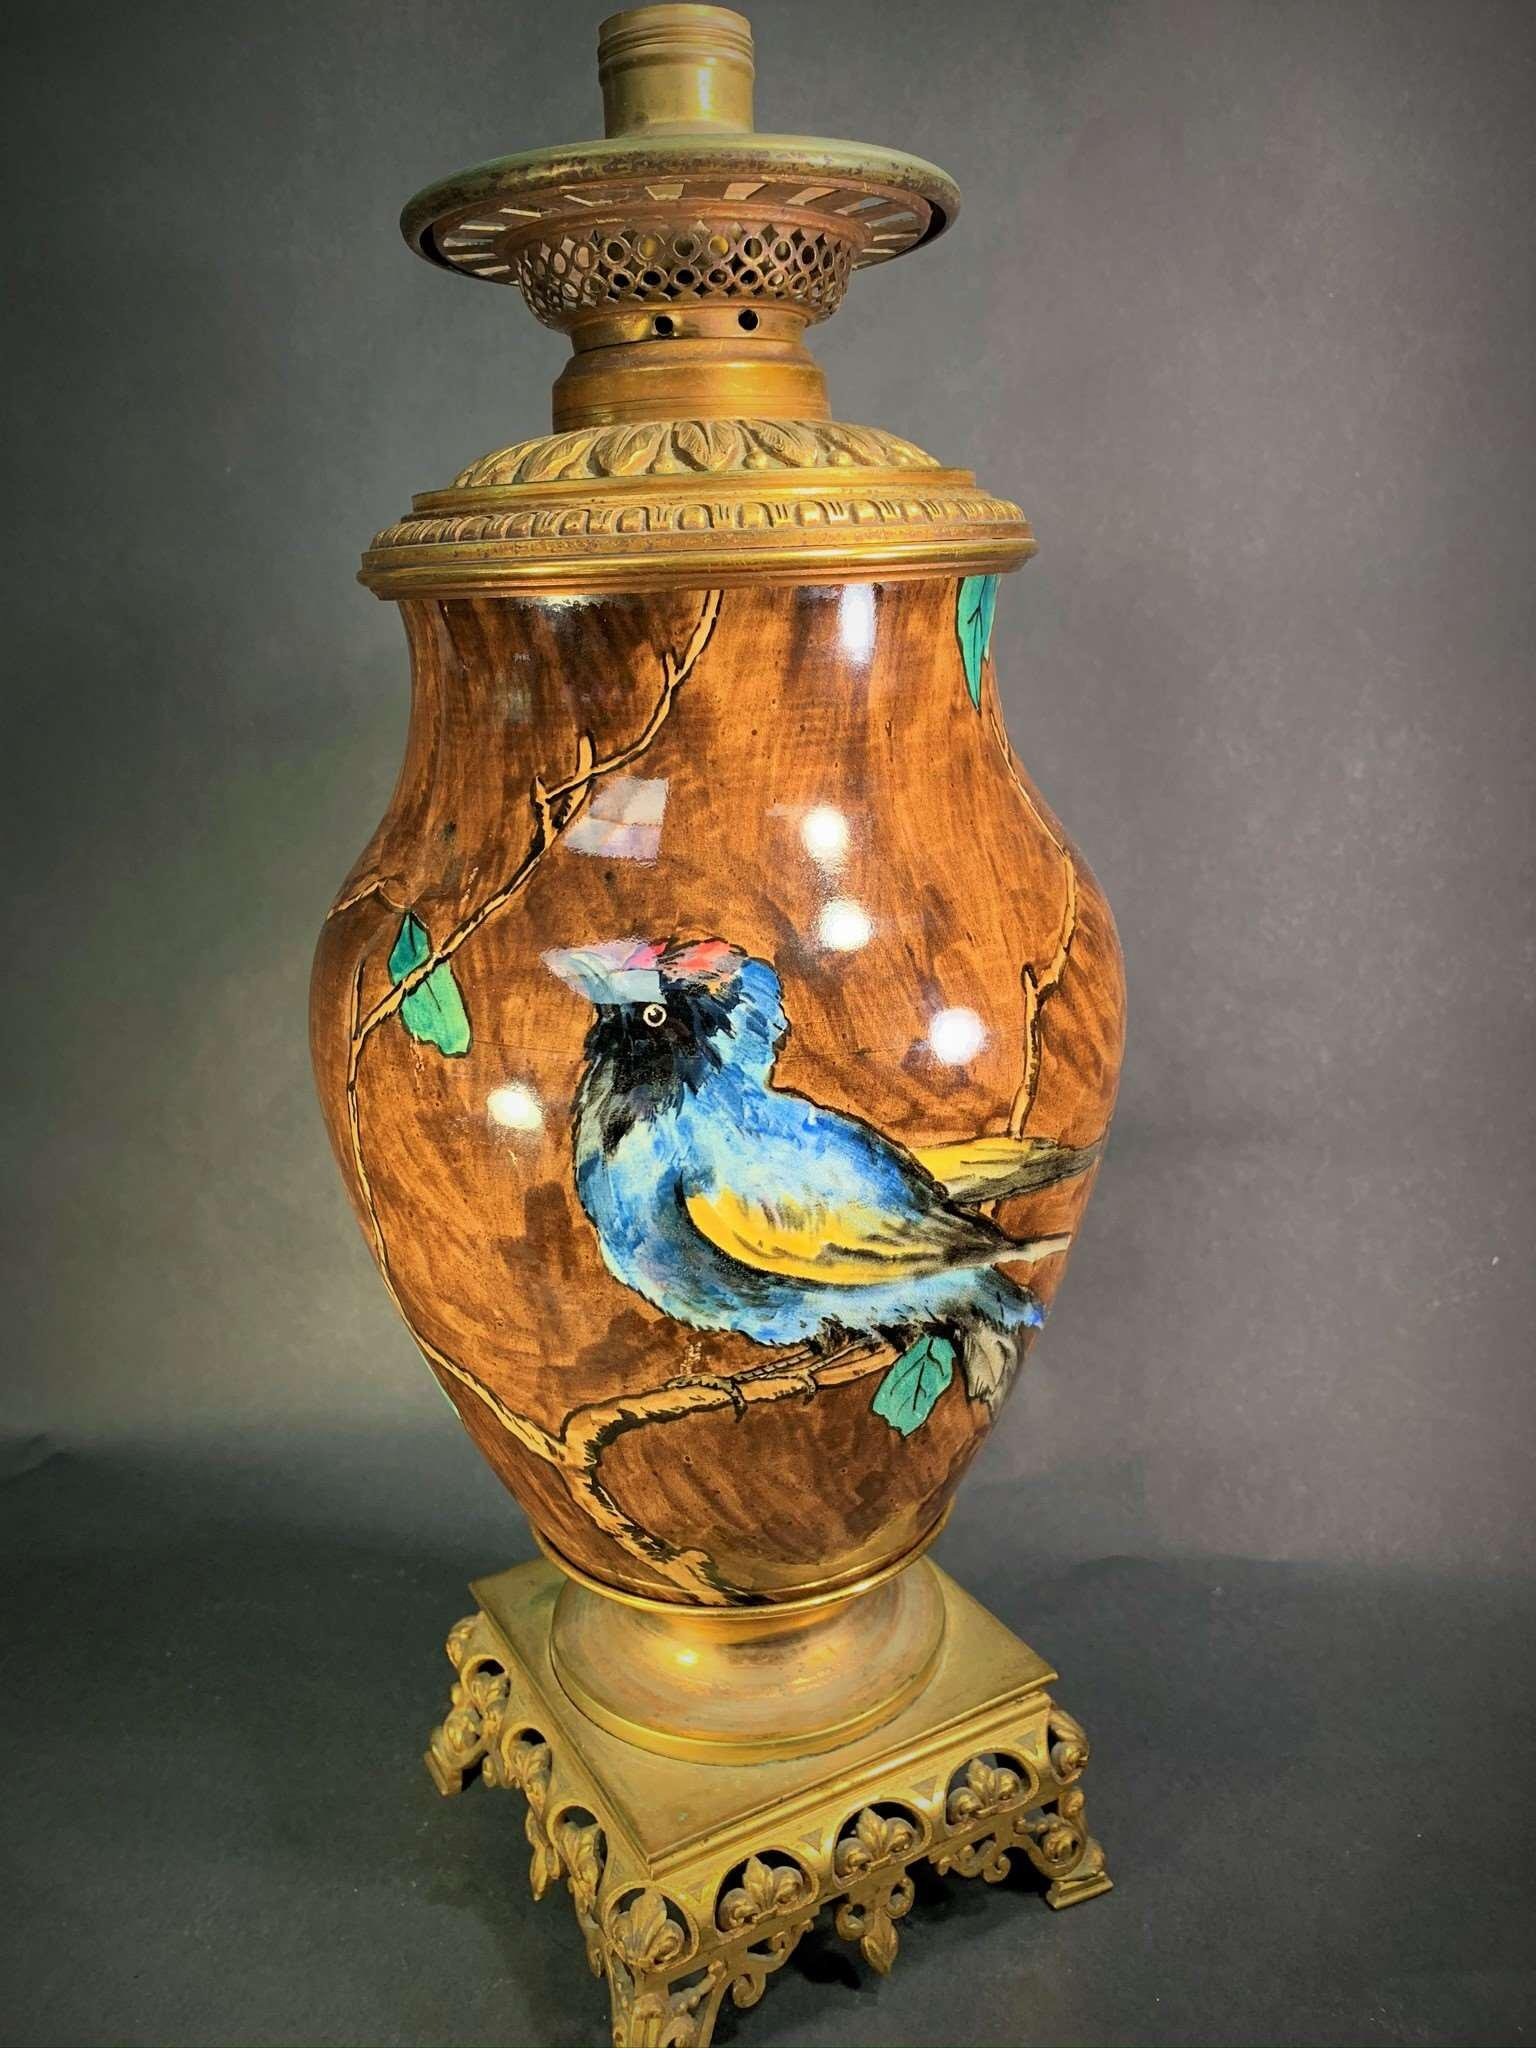 Antique Rookwood Style Lamp